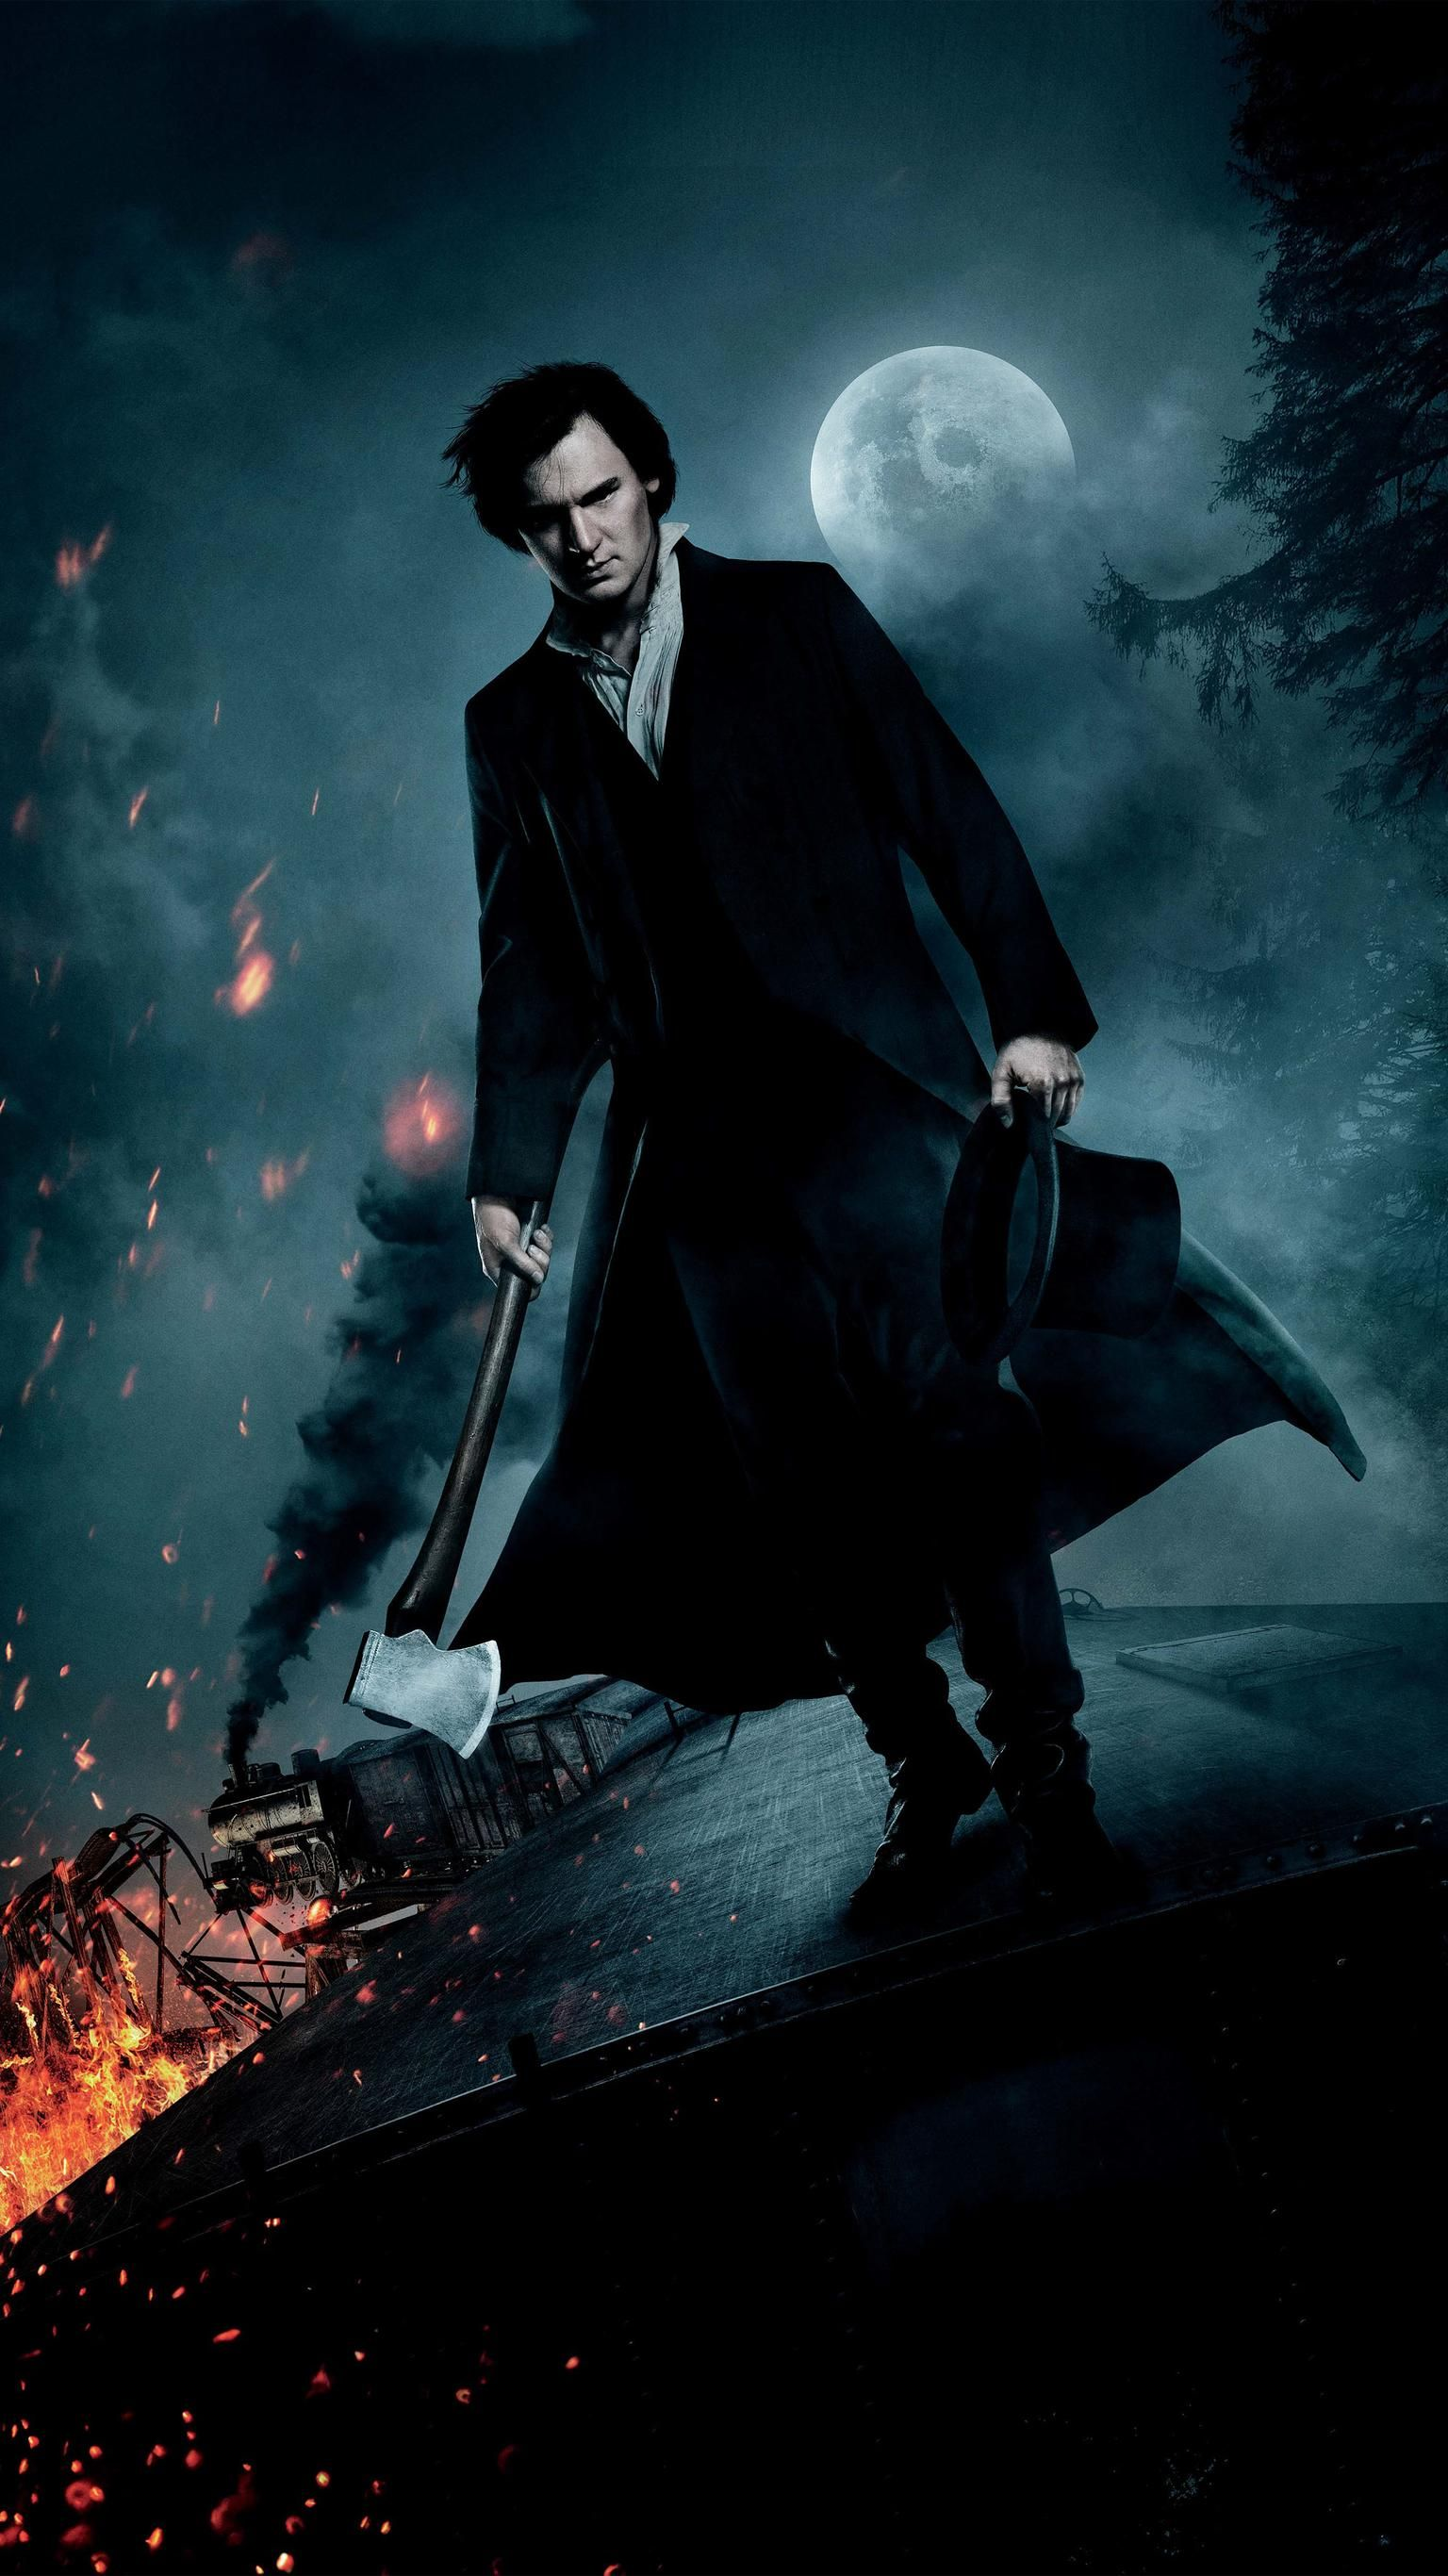 Abraham Lincoln Caçador De Vampiros Online Dublado Completo abraham lincoln: vampire hunter (2012) phone wallpaper in